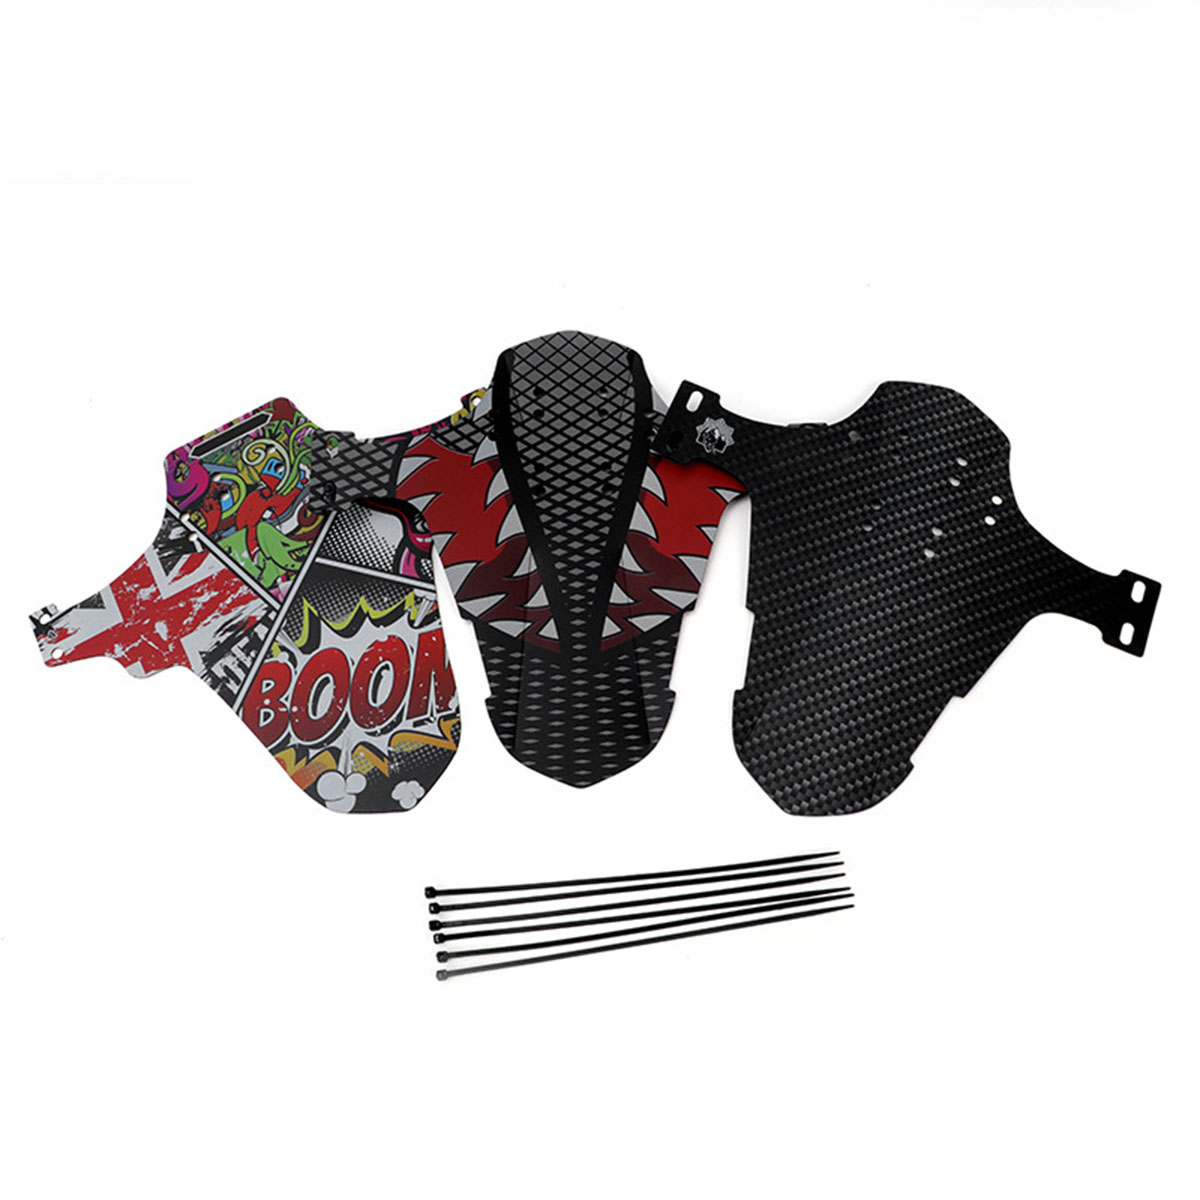 """2 pcs Mountain Bike Fenders MTB Mudguard Front and Rear,fit 26/"""" 29/"""" 27.5/"""""""